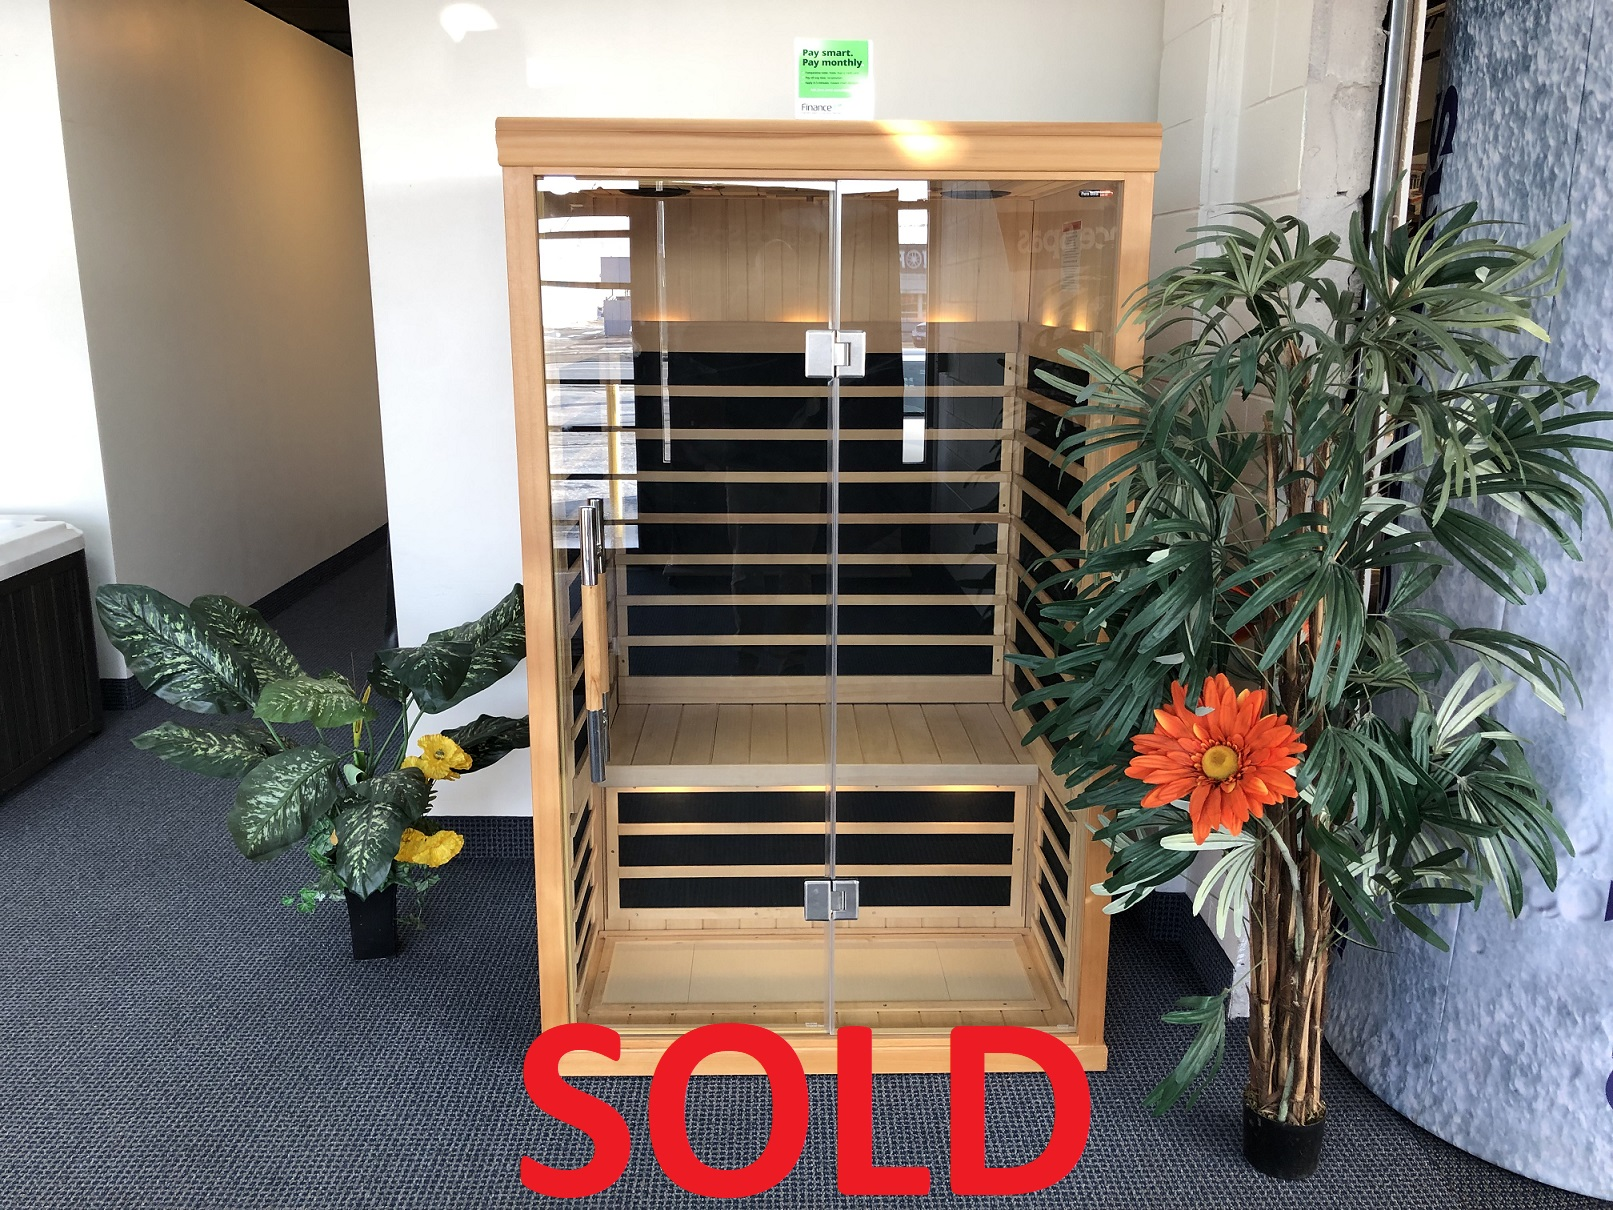 Finnleo infrared saunas 2 person sauna floor model special St Catharines Niagara Ontario